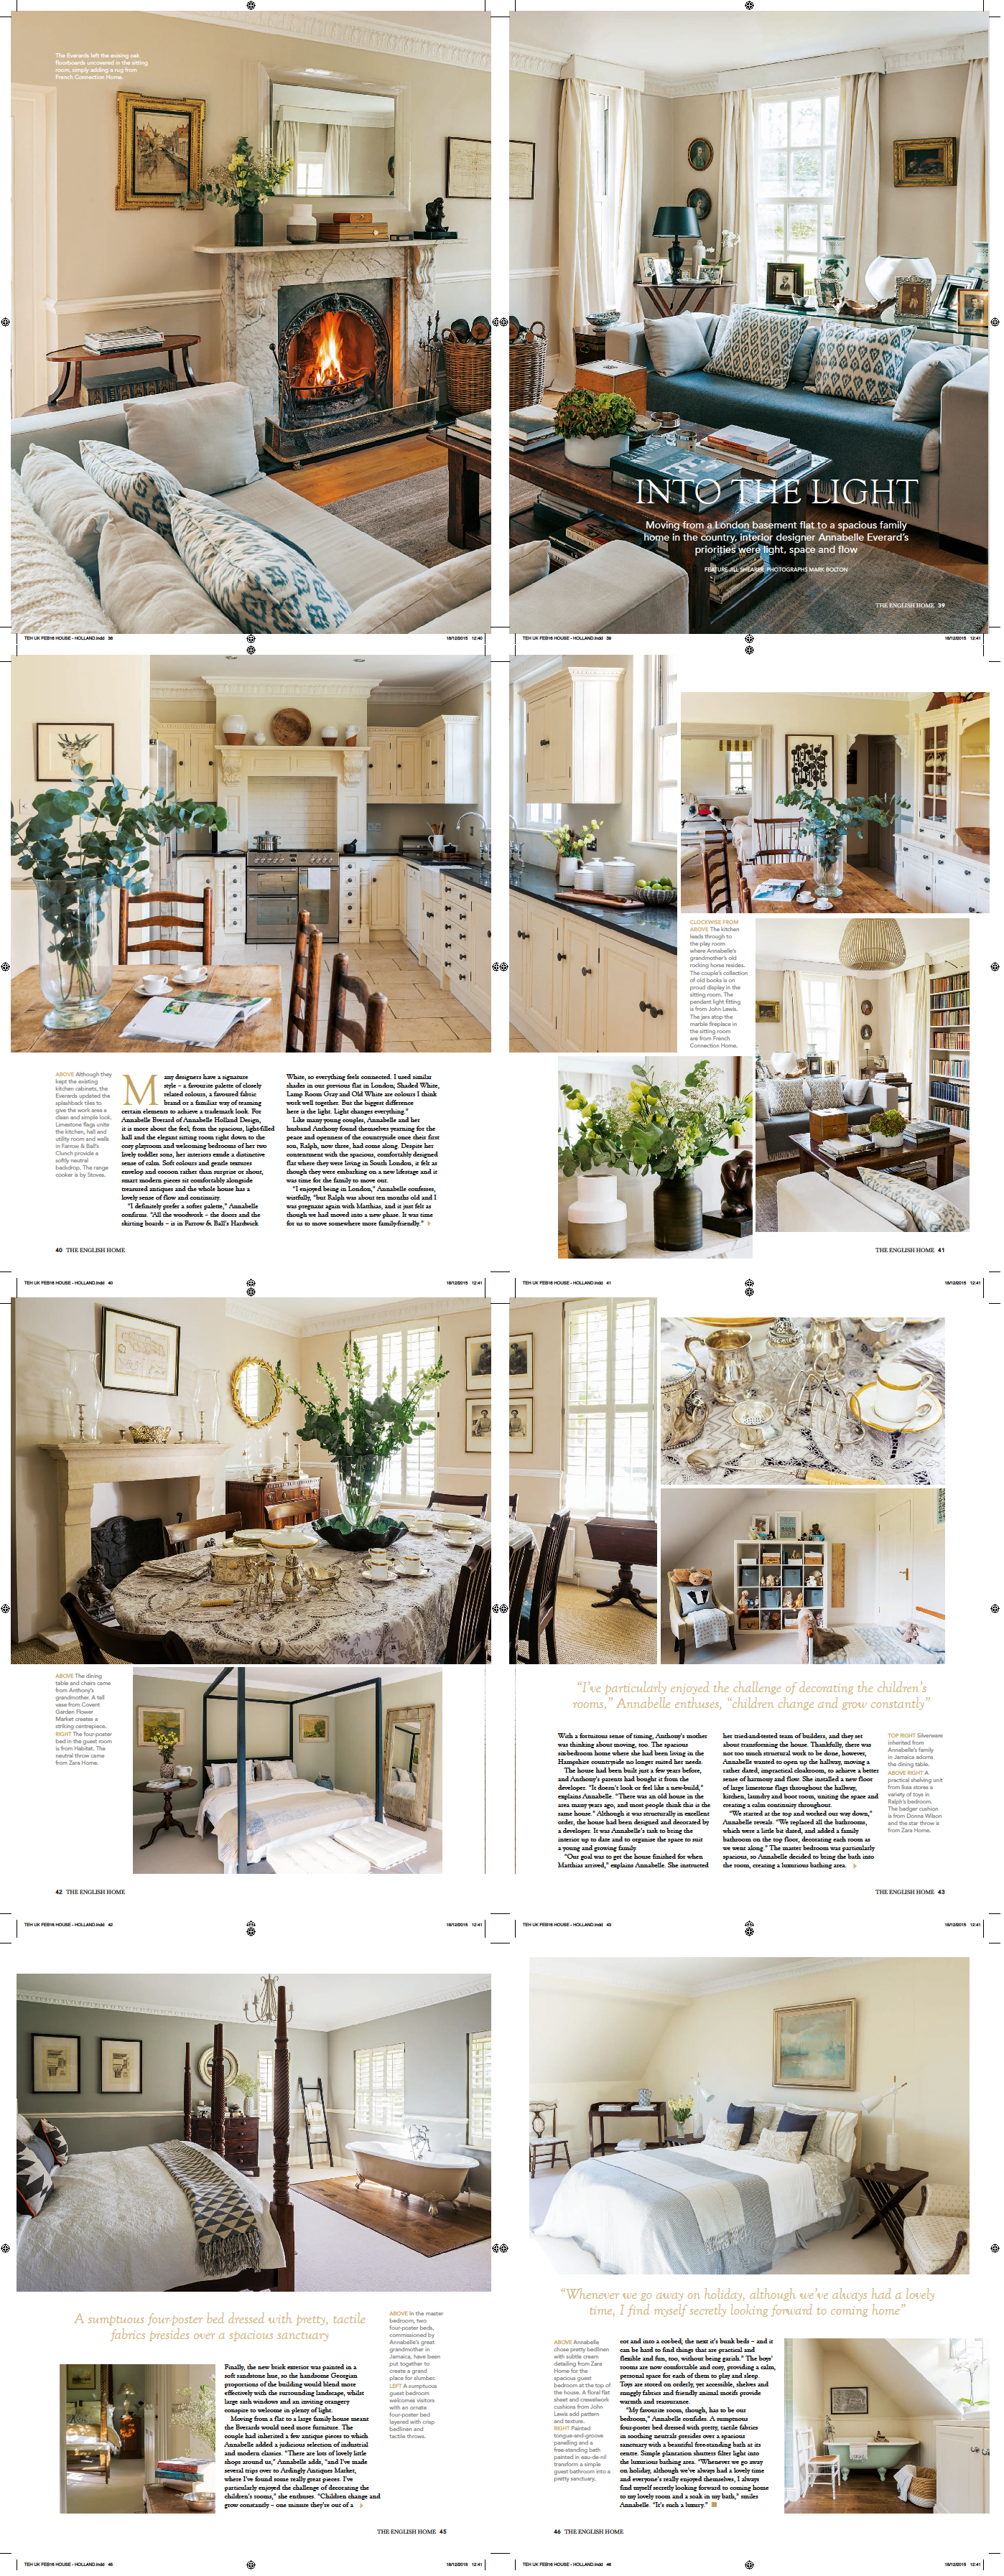 The English Home Feature